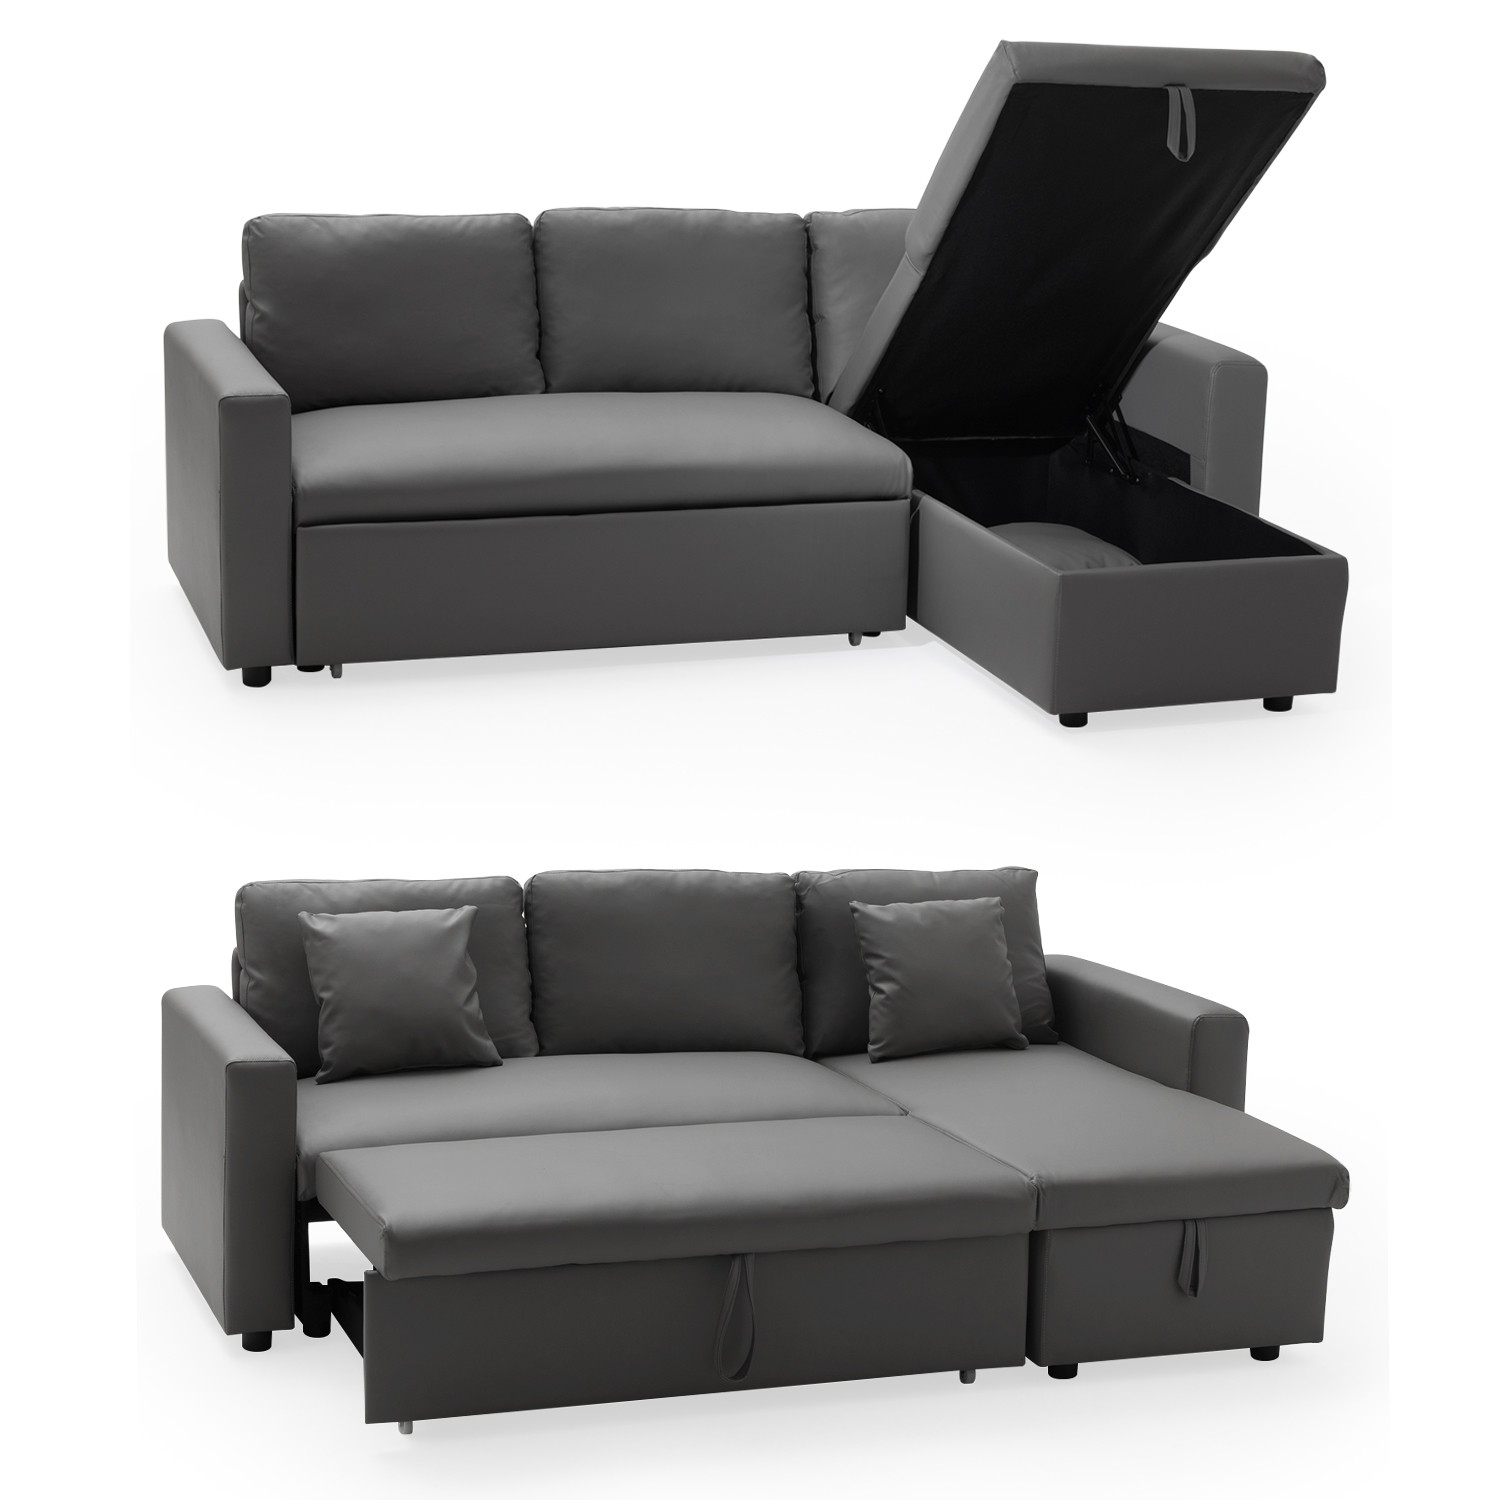 canap d 39 angle convertible 3 places simili cuir gris. Black Bedroom Furniture Sets. Home Design Ideas